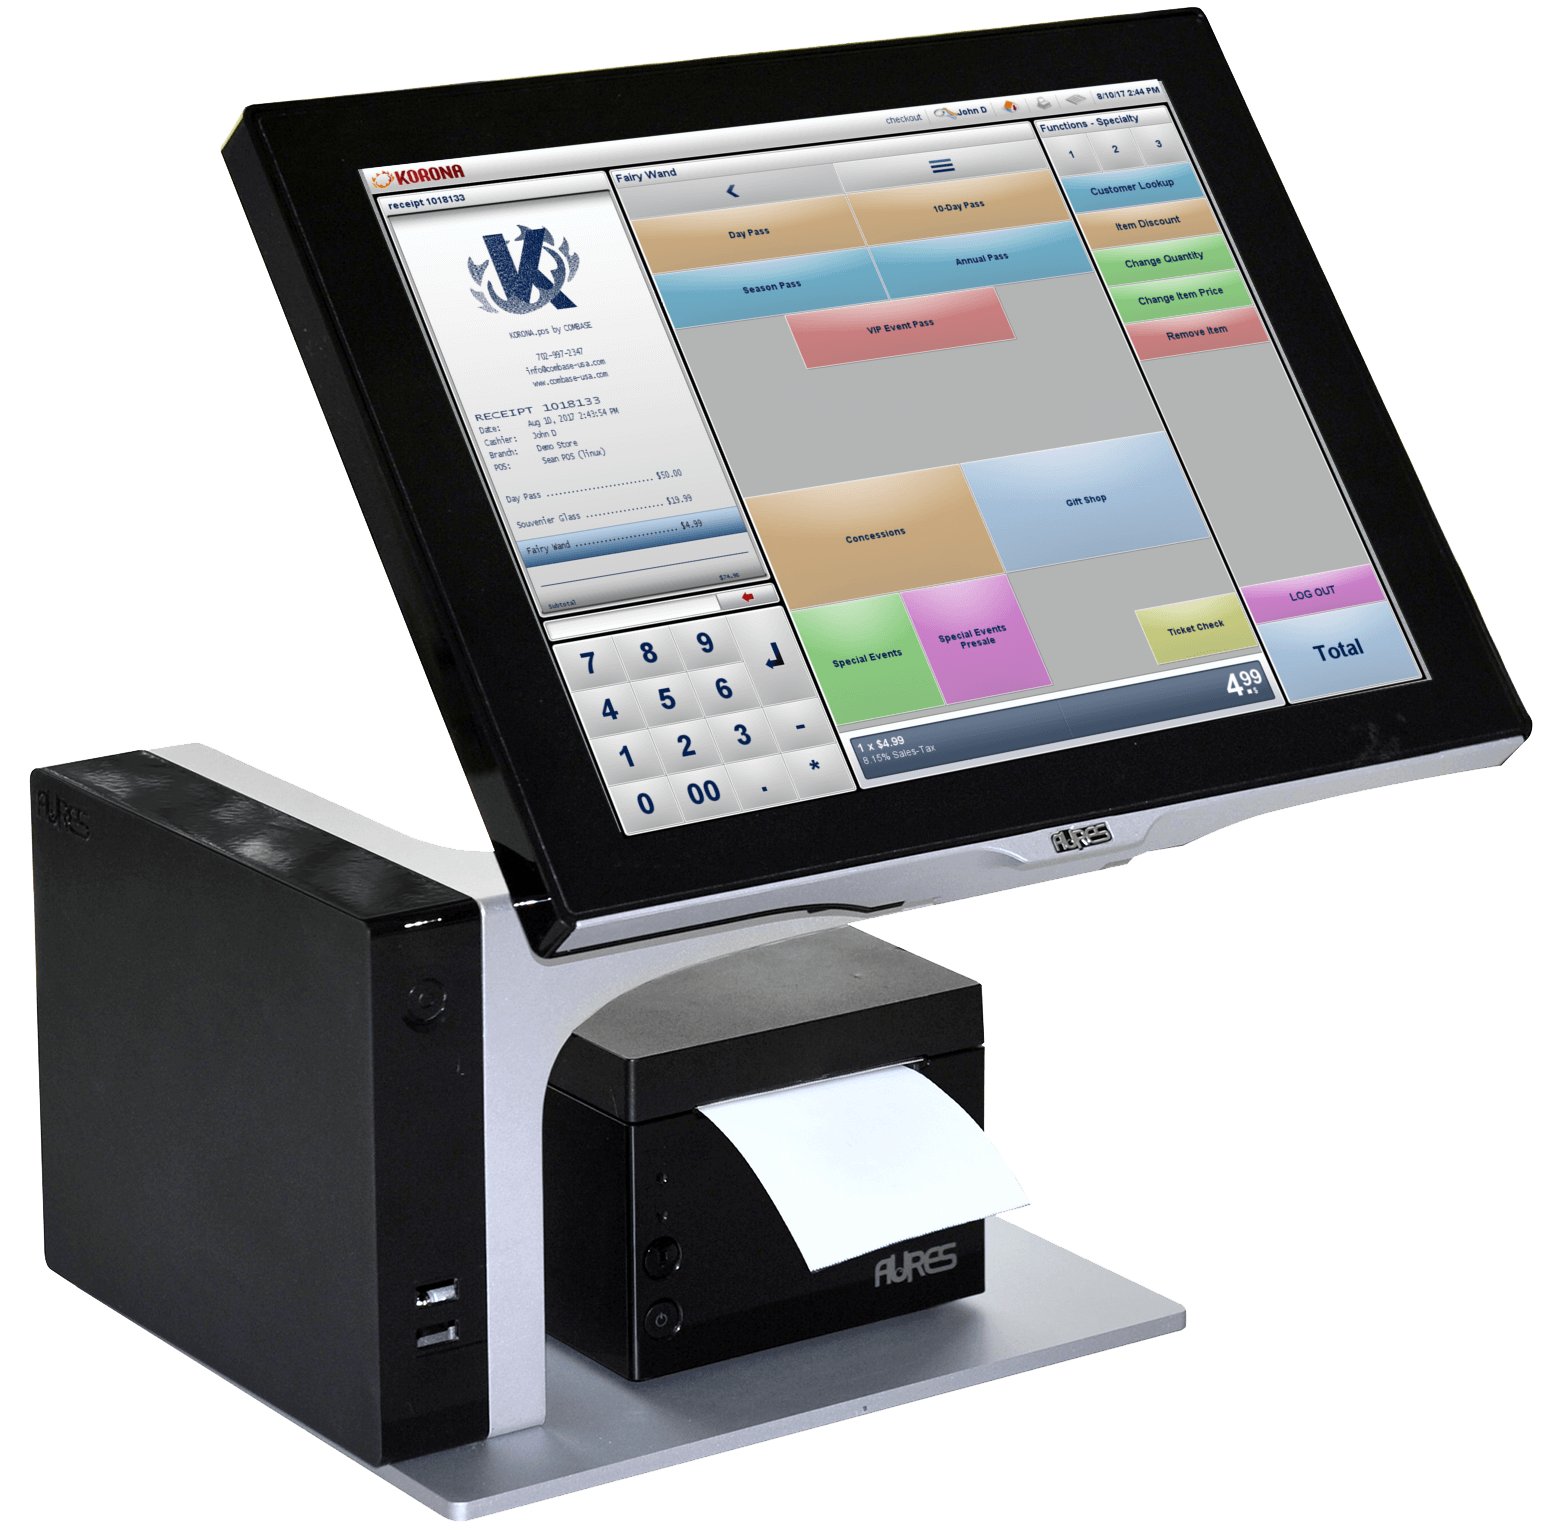 Salon POS system with receipt printer and scanner